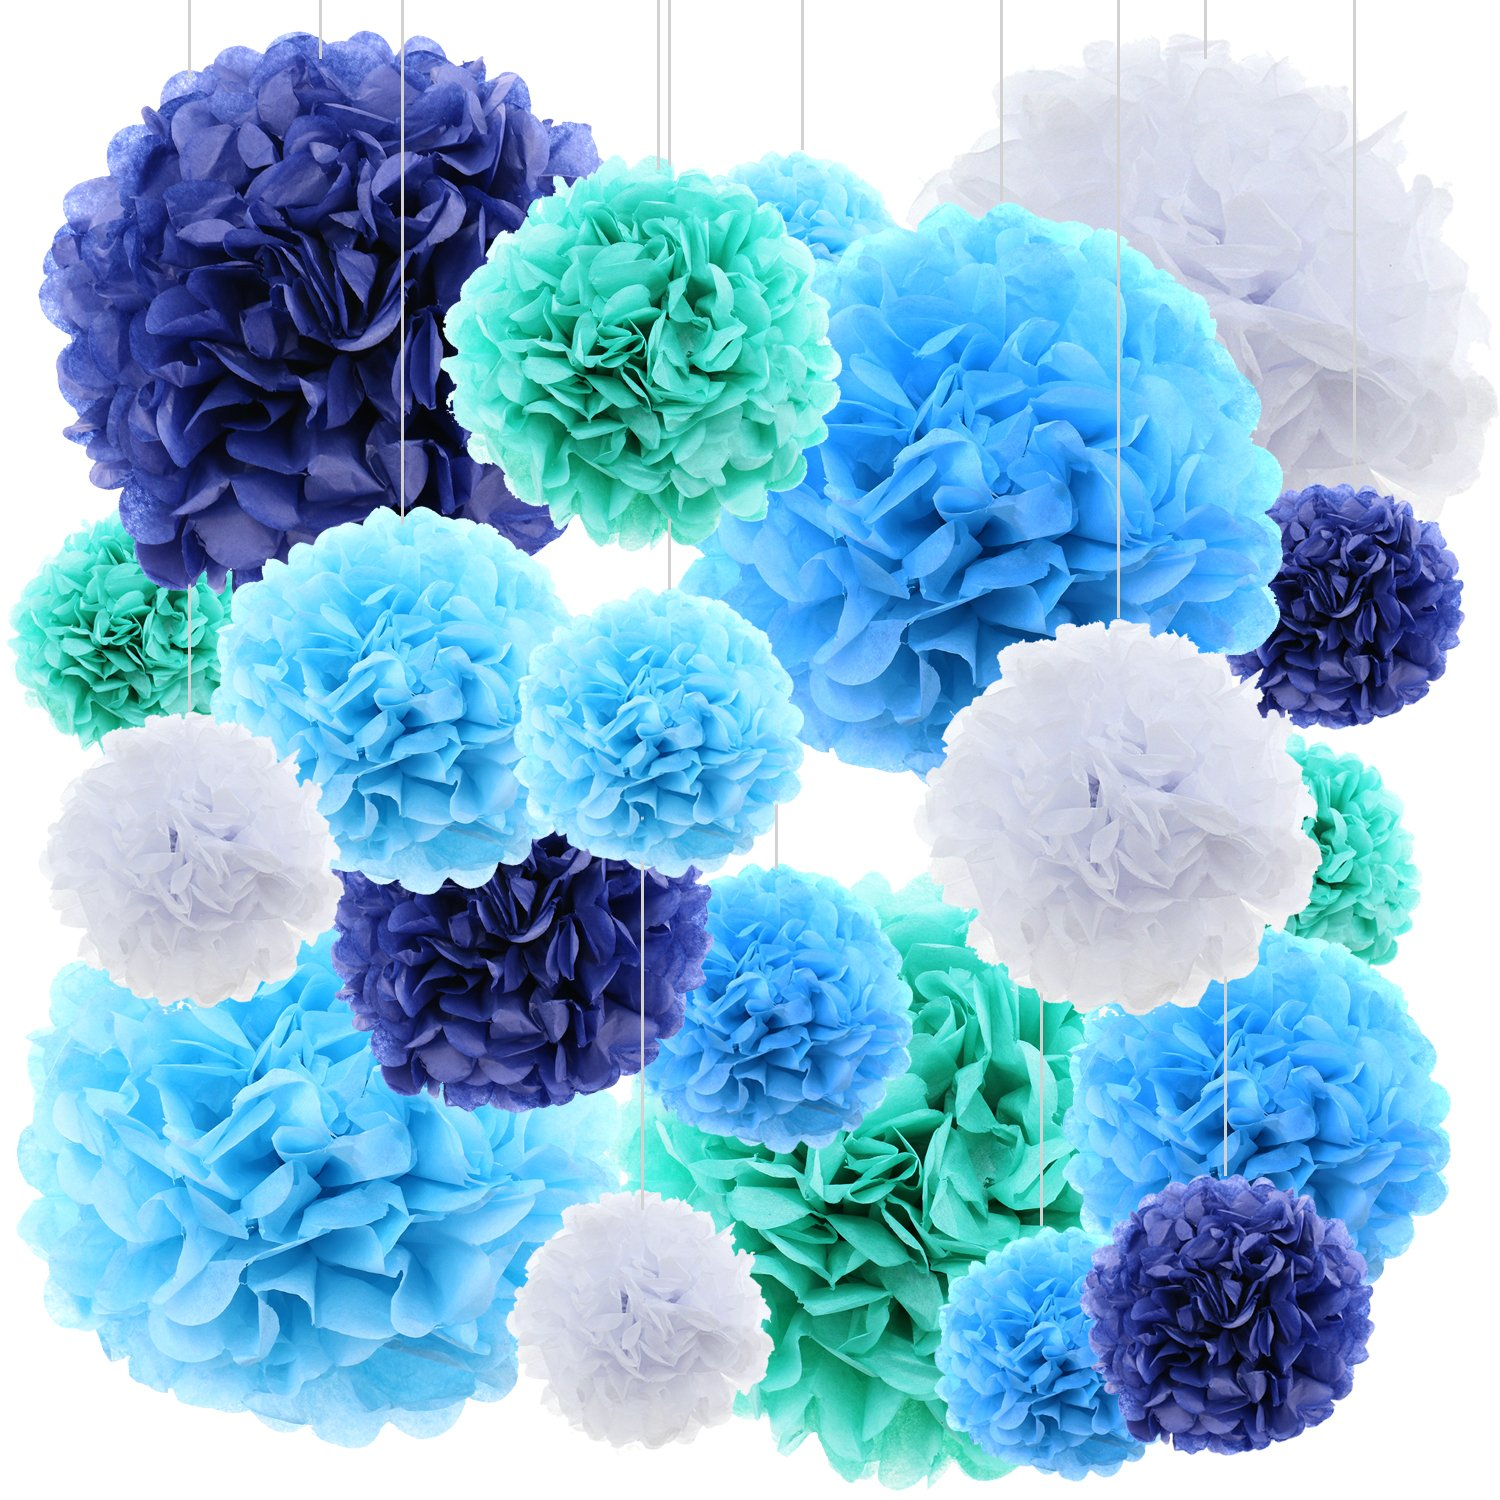 20 ct Tissue Paper flowers pom poms wedding party decor - Blue by Azude